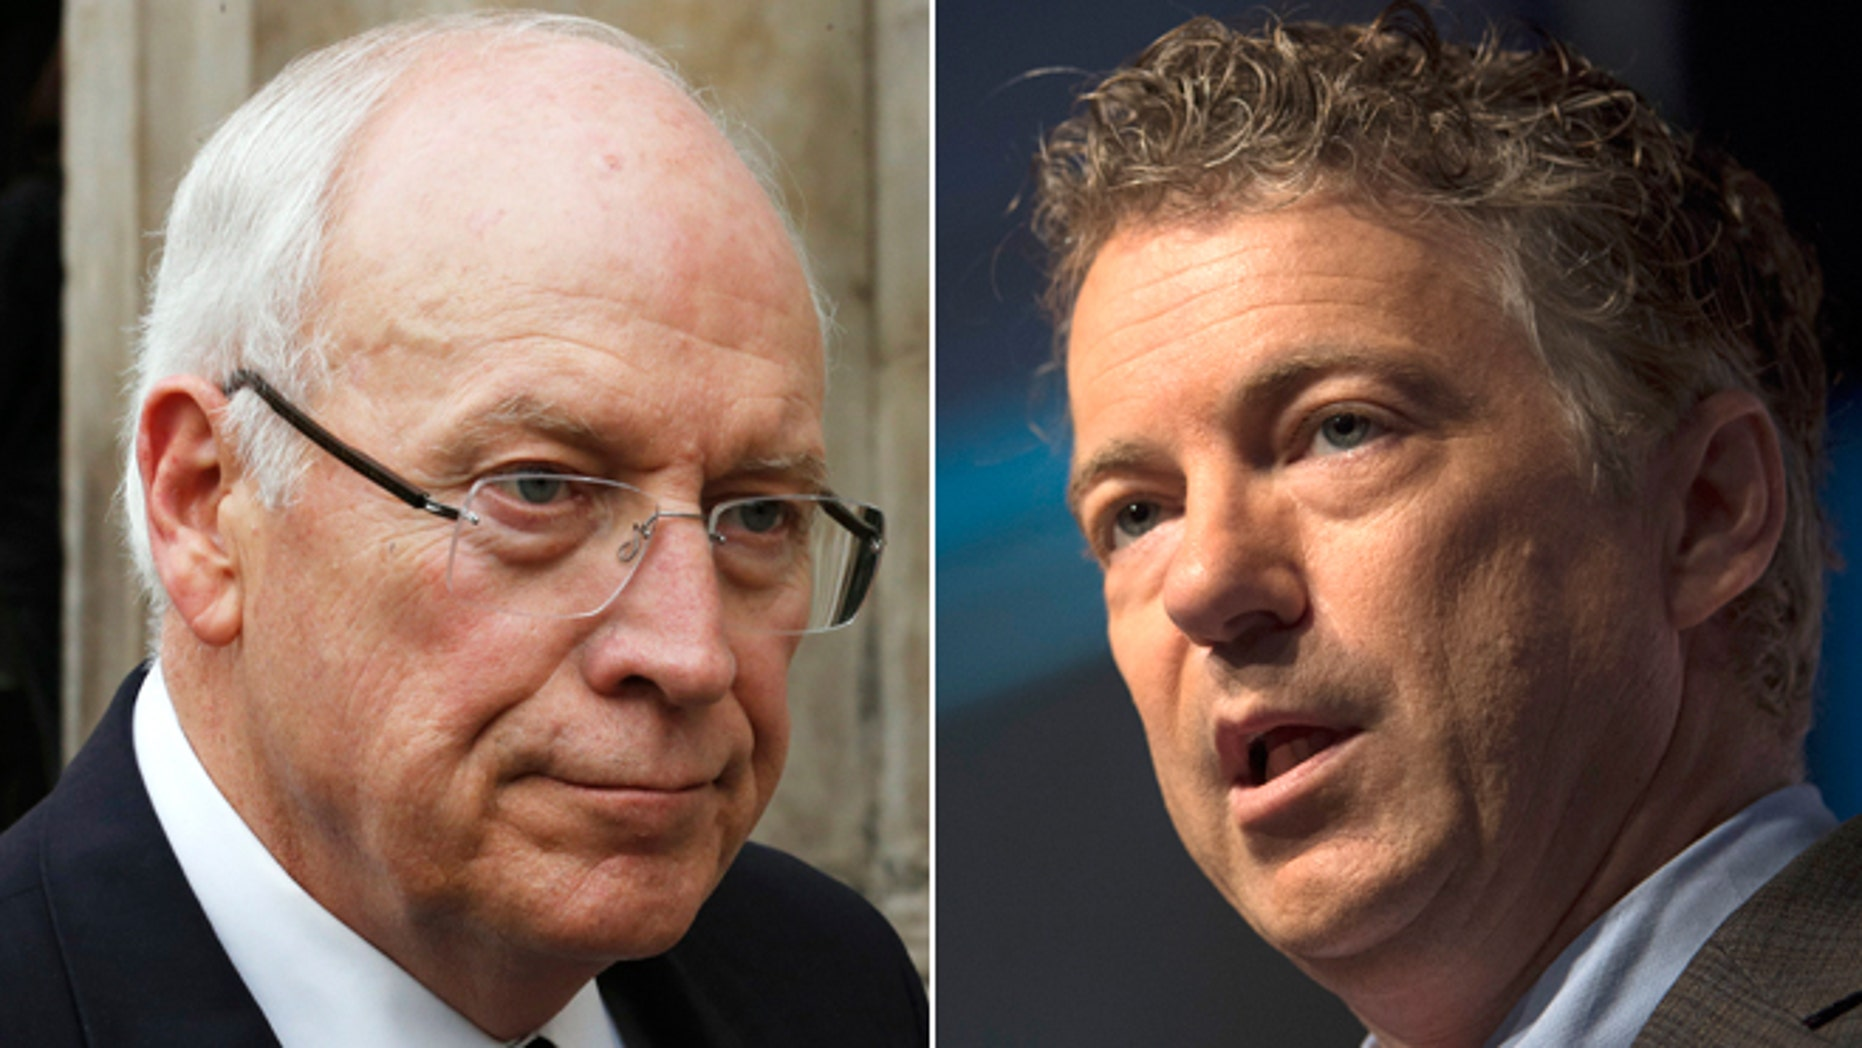 FILE: Former Vice President Dick Cheney and Kentucky Sen. Rand Paul, Republicans.